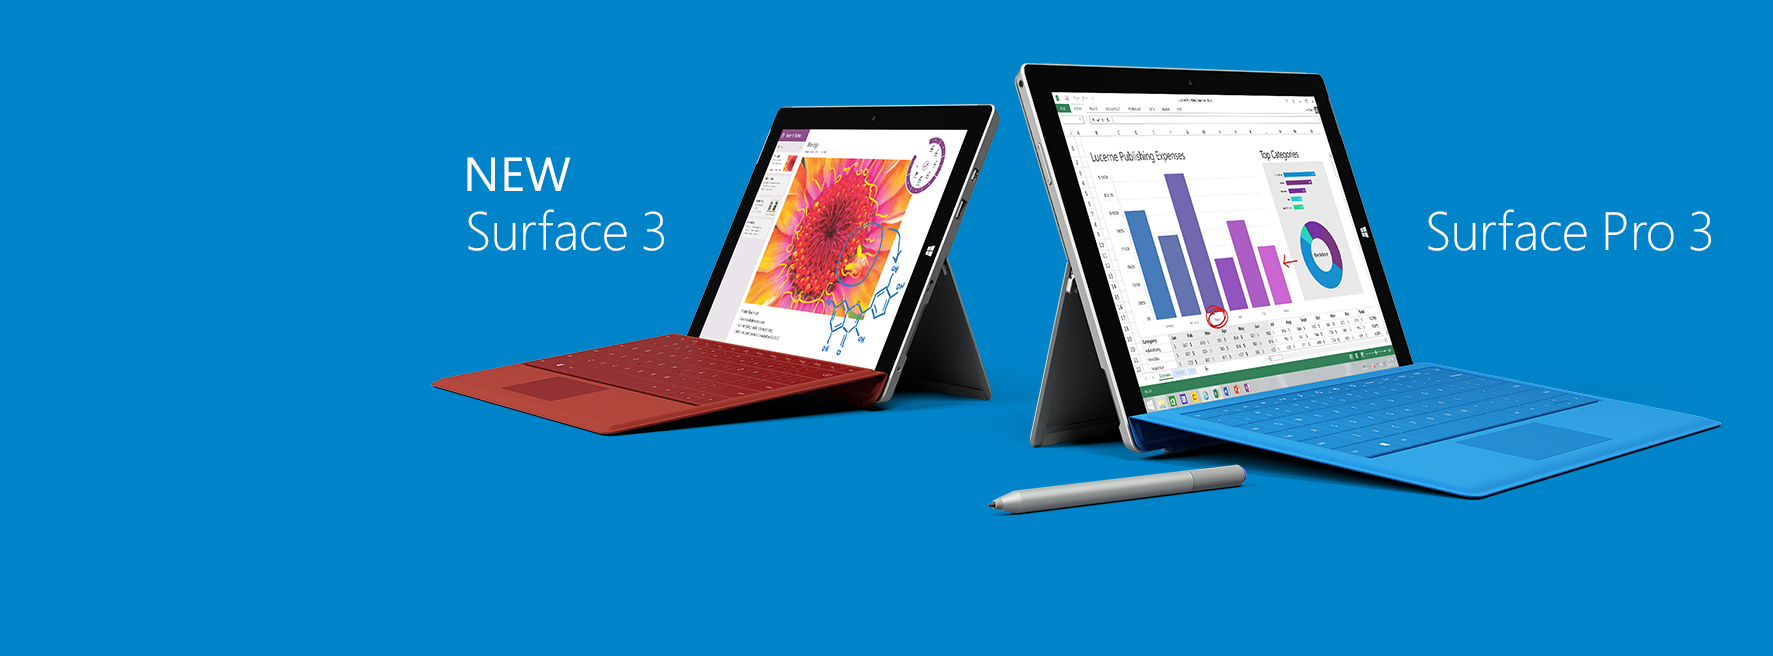 surface 3 1